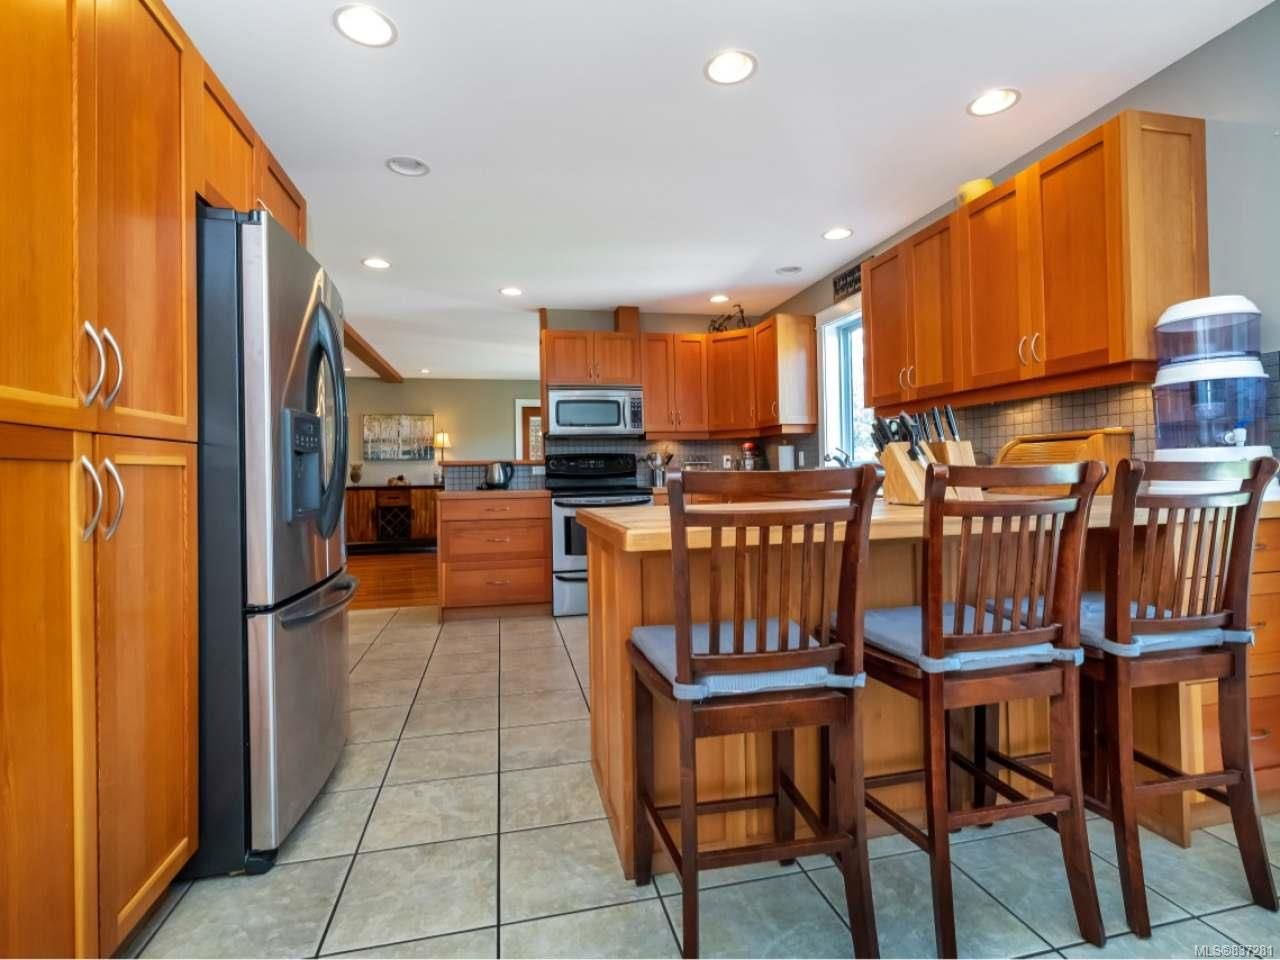 Photo 20: Photos: 925 Lilmac Rd in MILL BAY: ML Mill Bay House for sale (Malahat & Area)  : MLS®# 837281